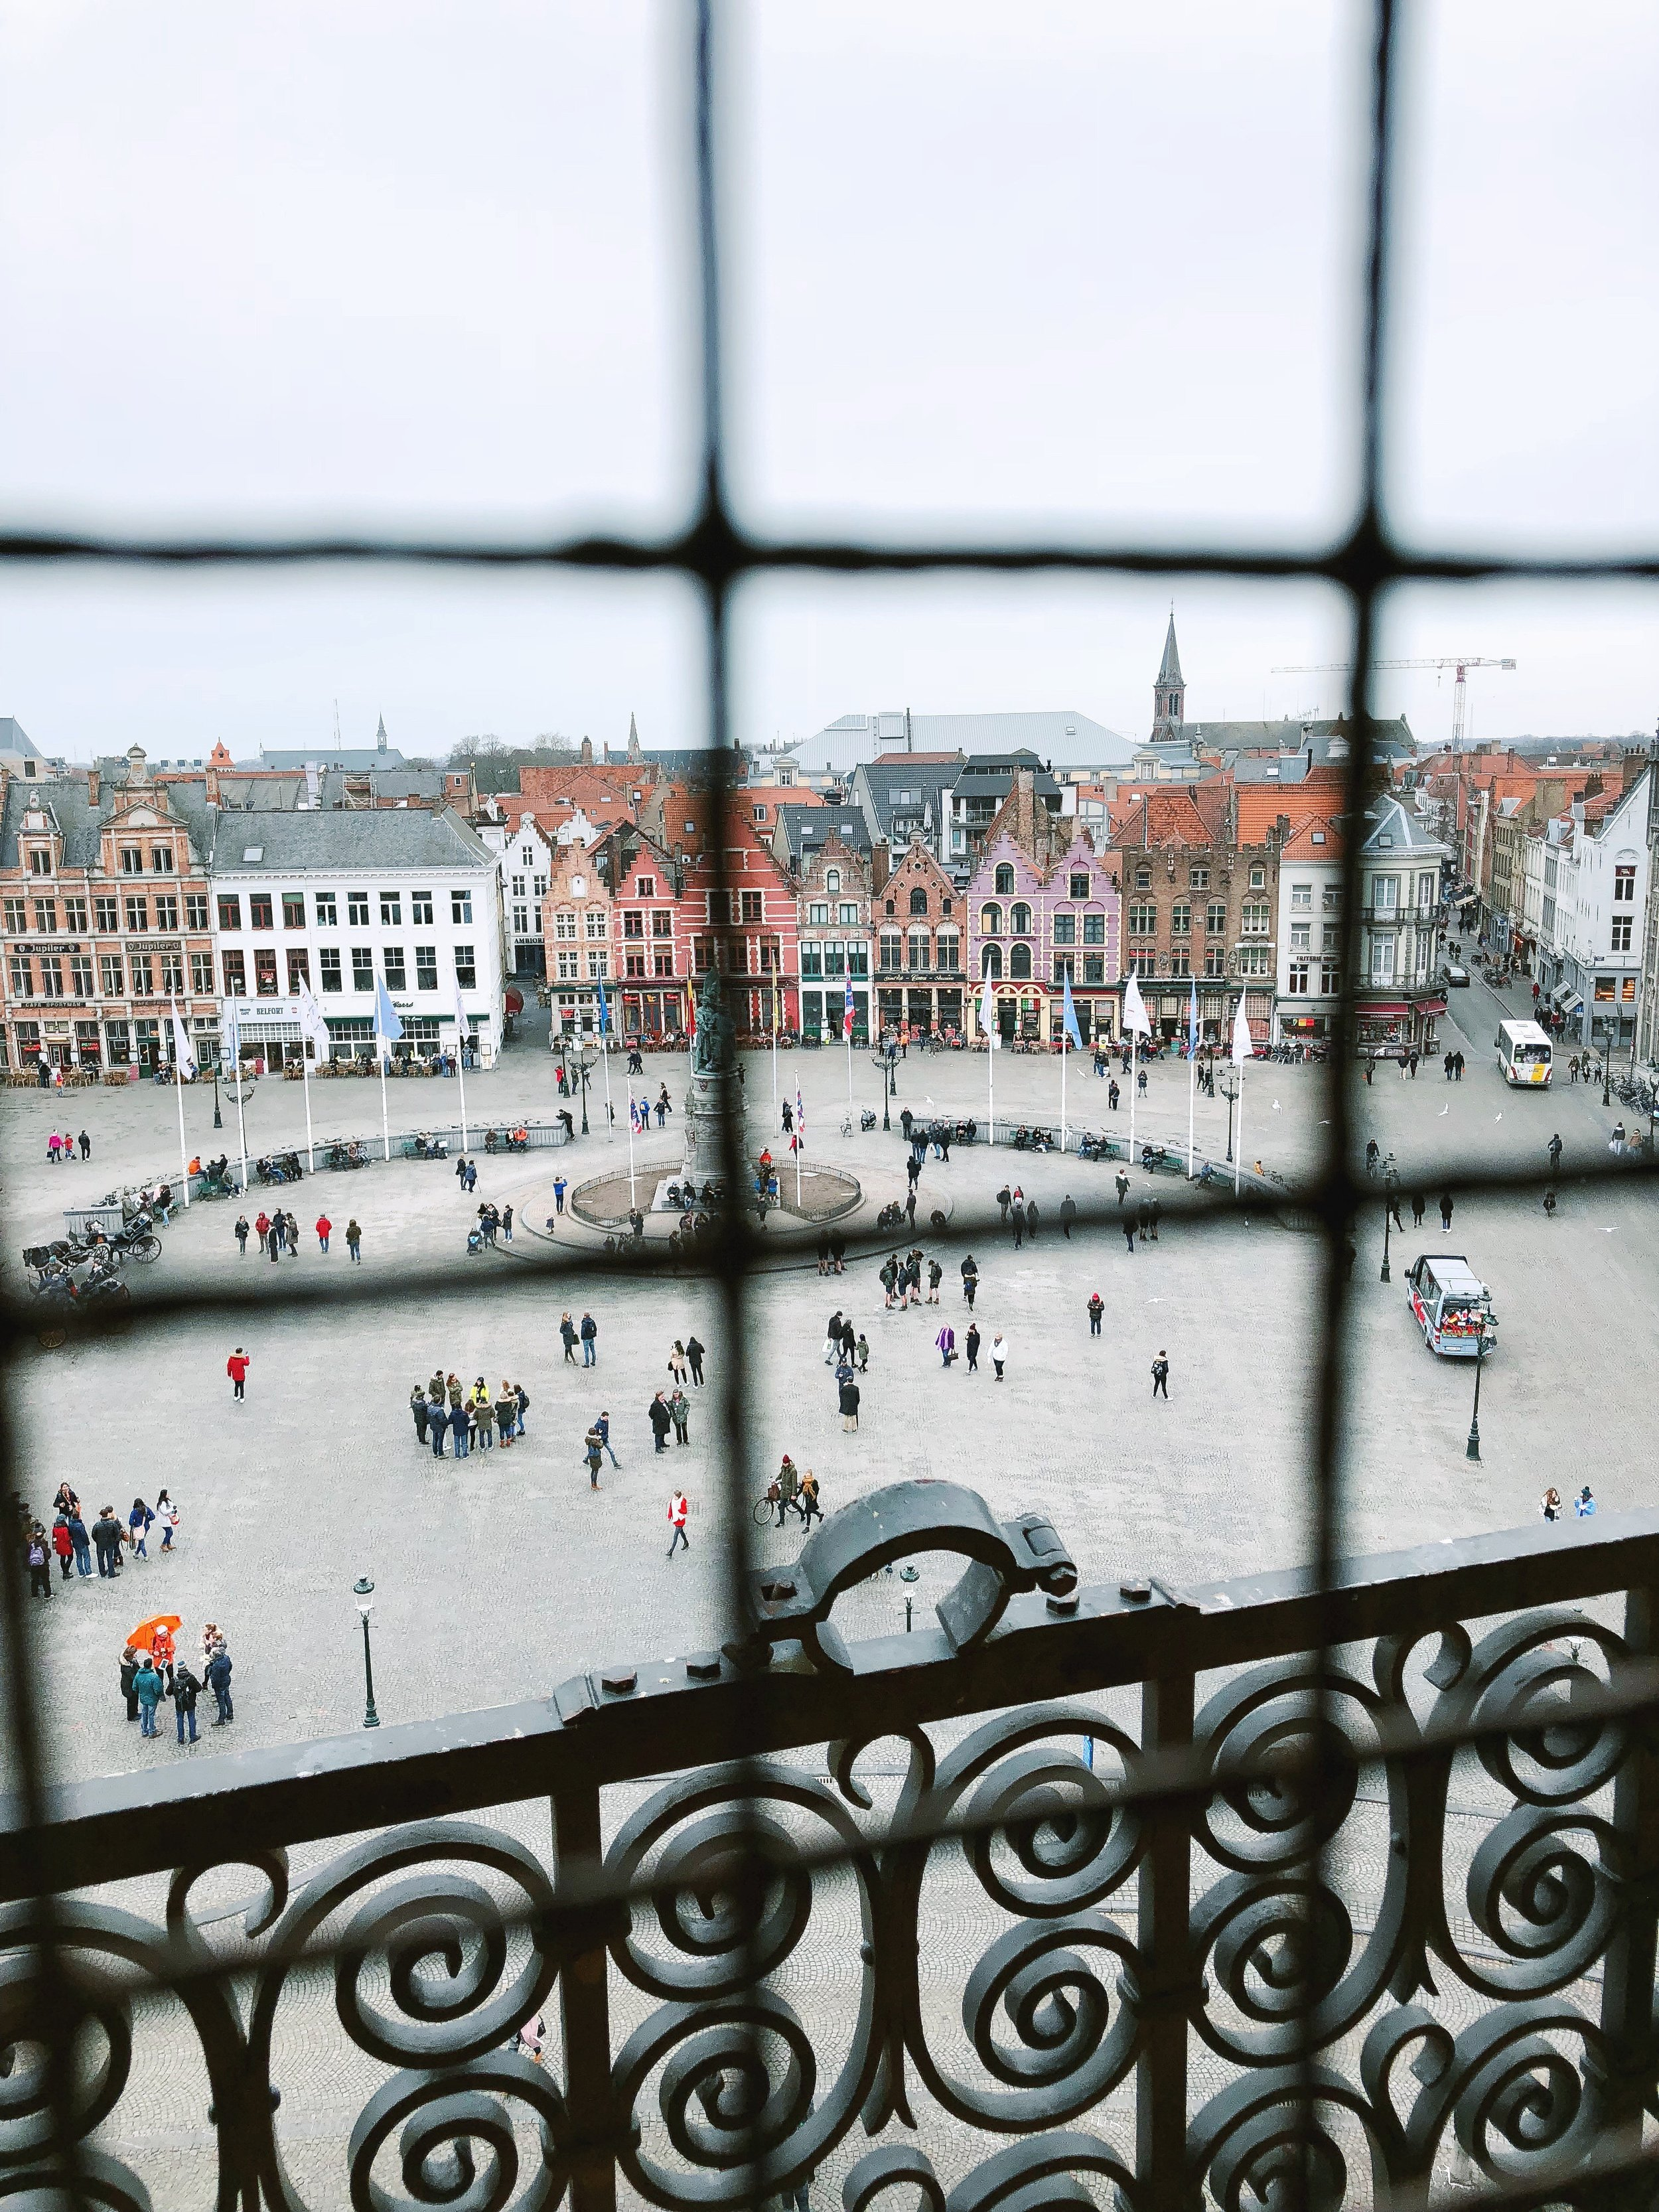 View from the top of the Belfry of Bruges